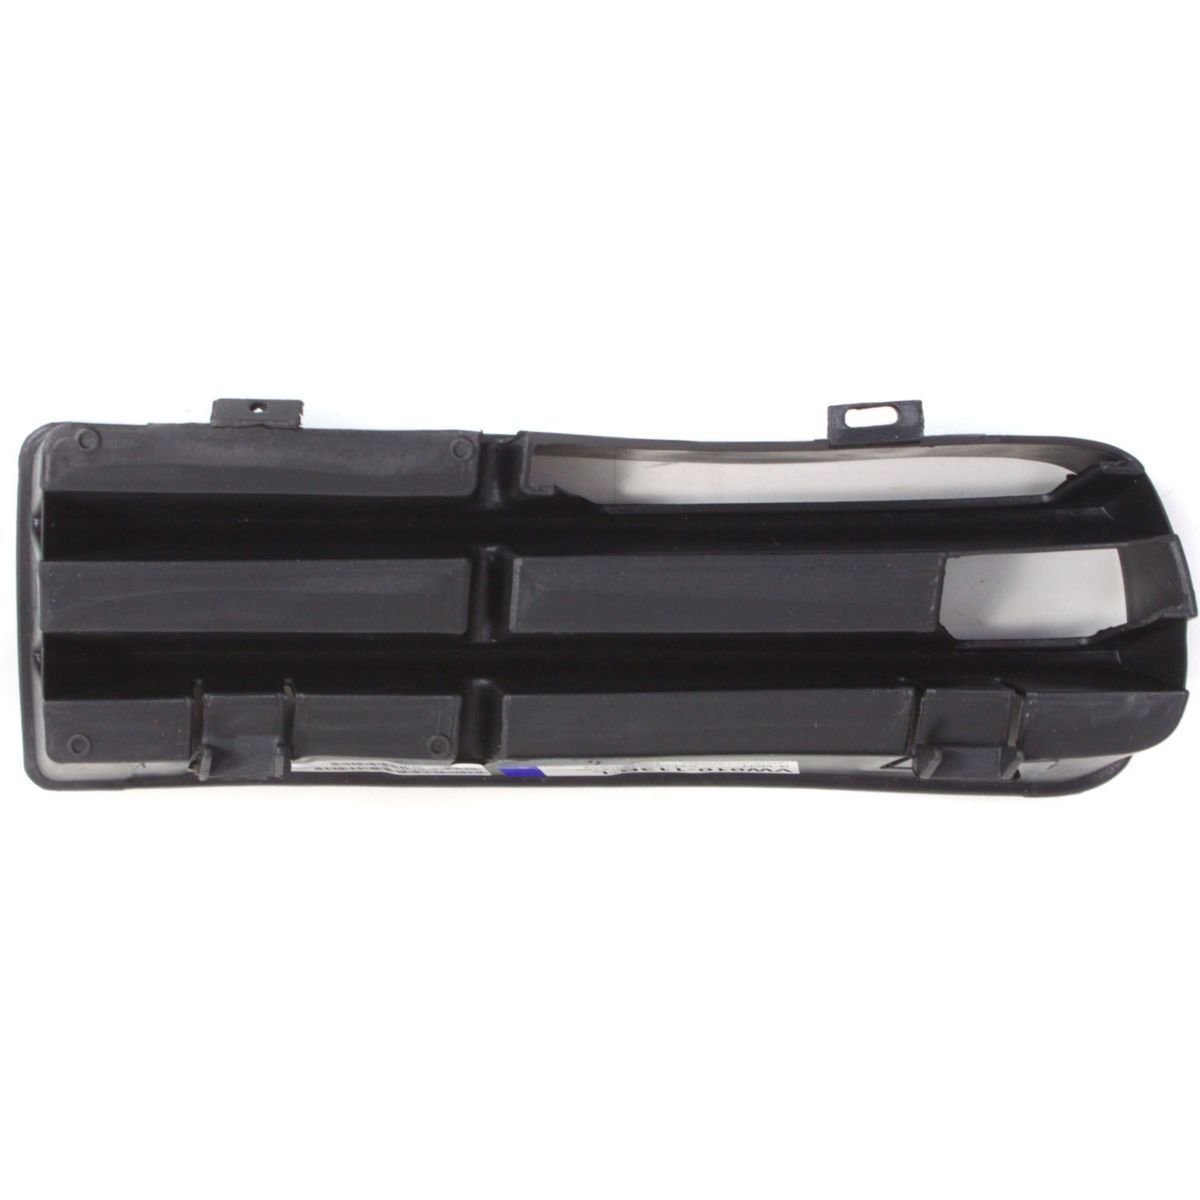 DAT AUTO PARTS Replacement Black Front Bumper Cover Grille Grill Insert Left Driver Side VW1036102